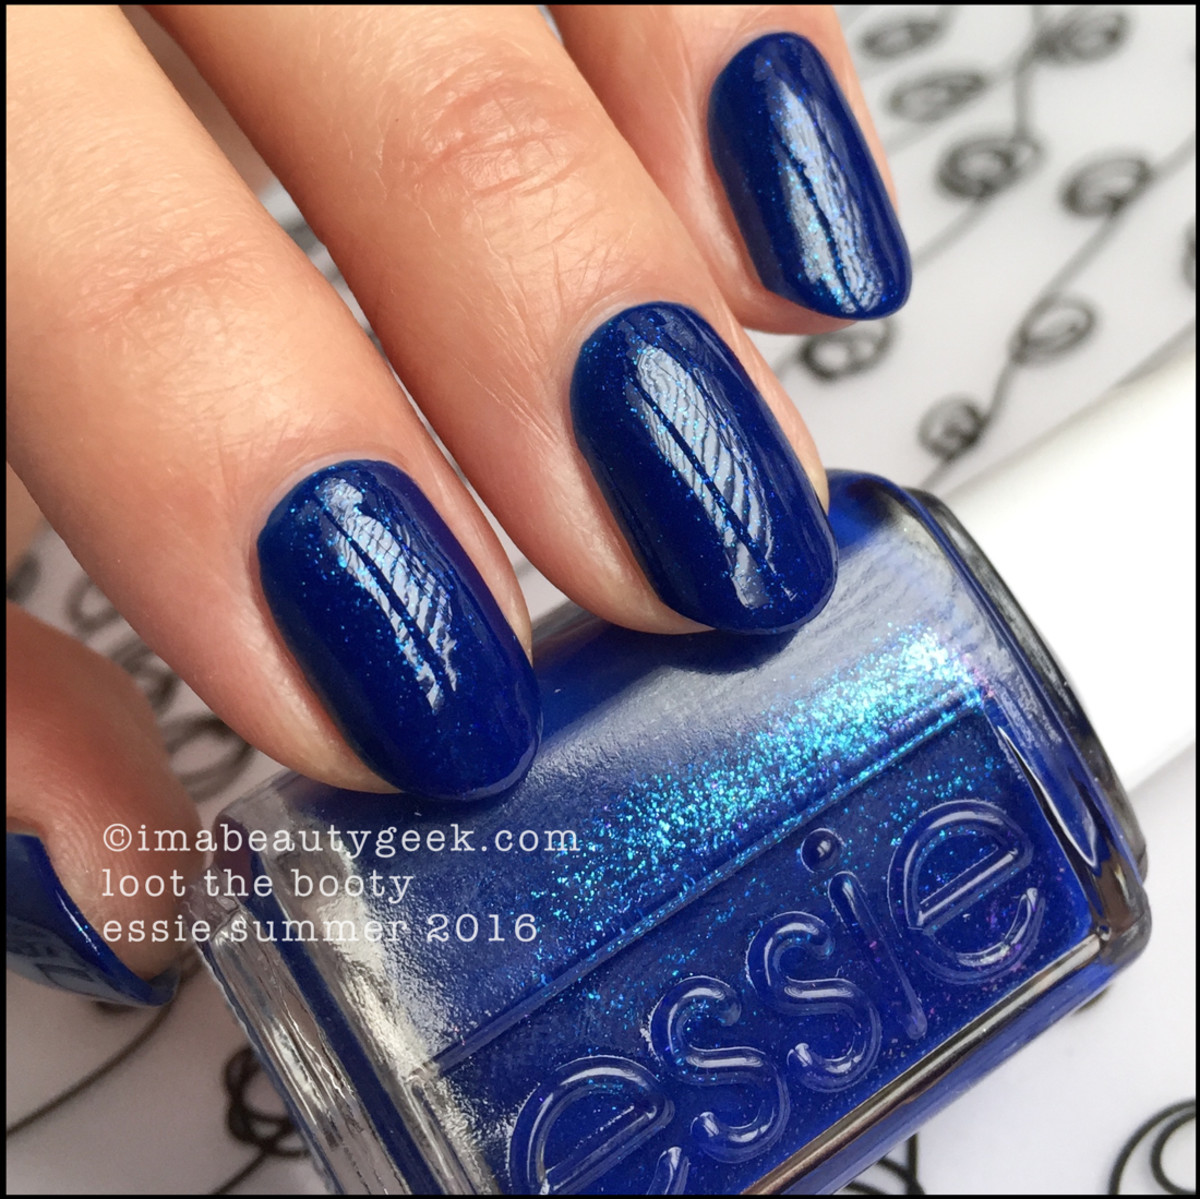 Essie Loot the Booty_Essie Summer 2016